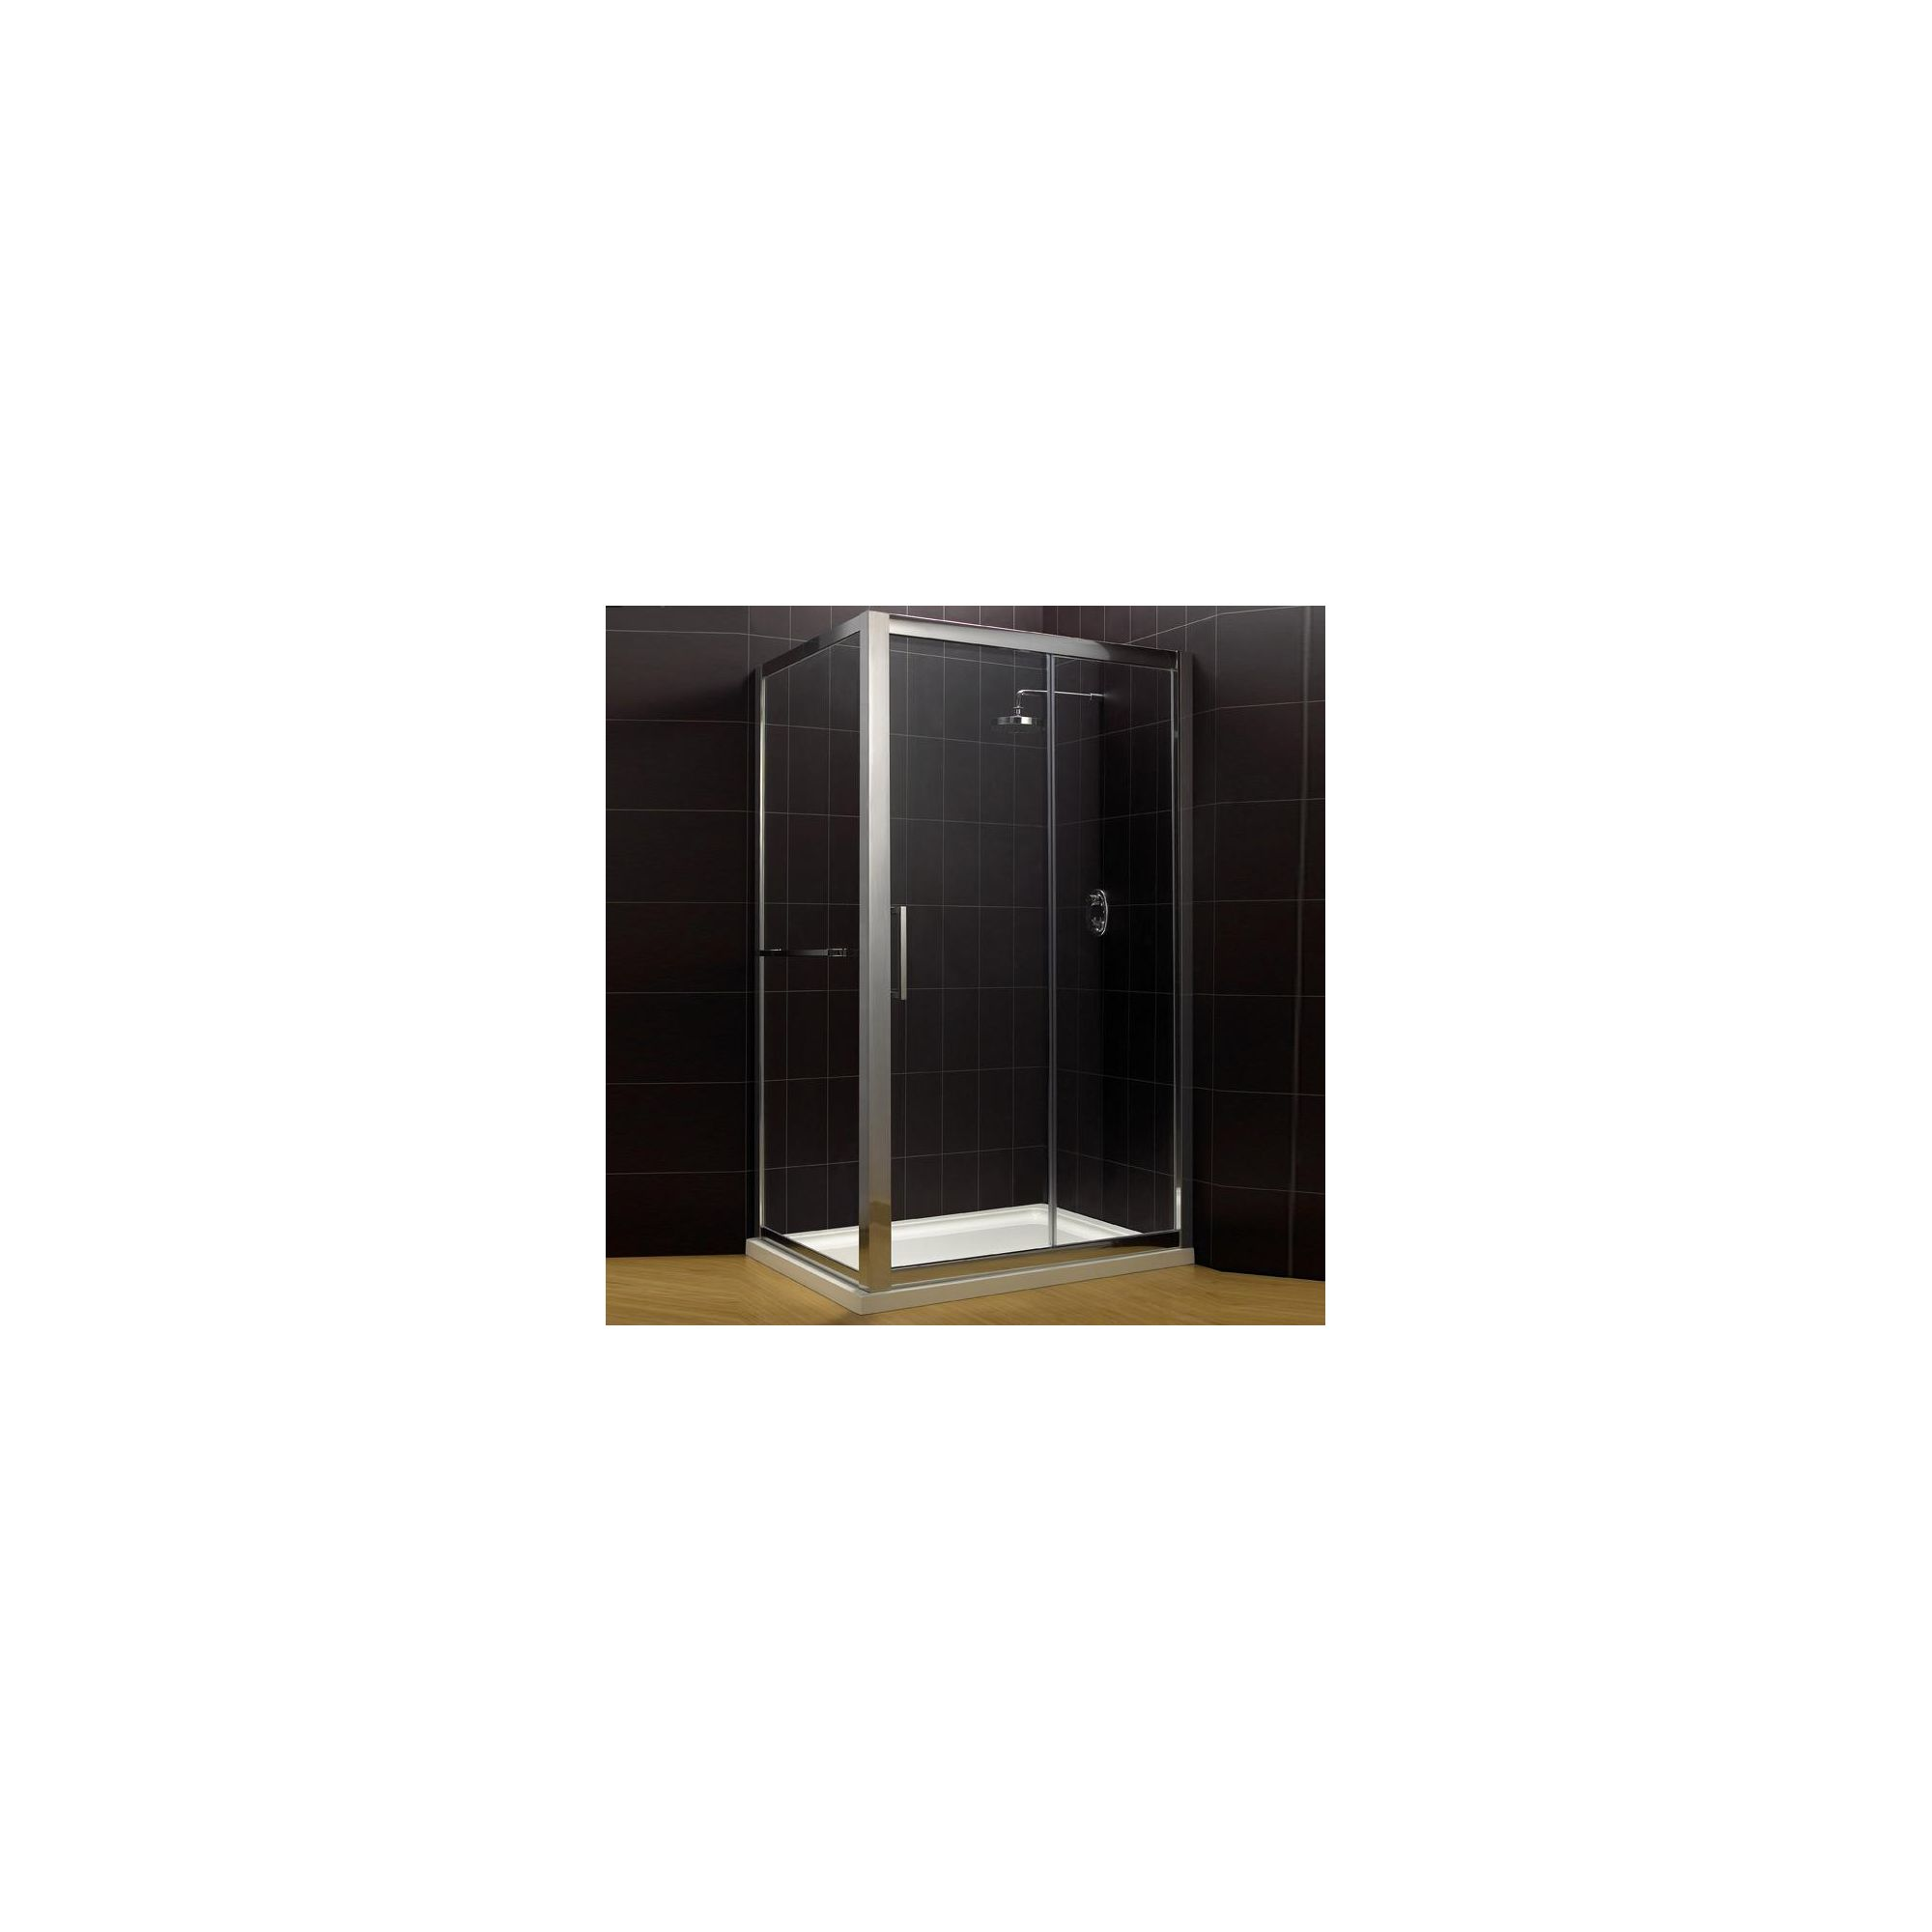 Duchy Supreme Silver Sliding Door Shower Enclosure, 1000mm x 900mm, Standard Tray, 8mm Glass at Tesco Direct